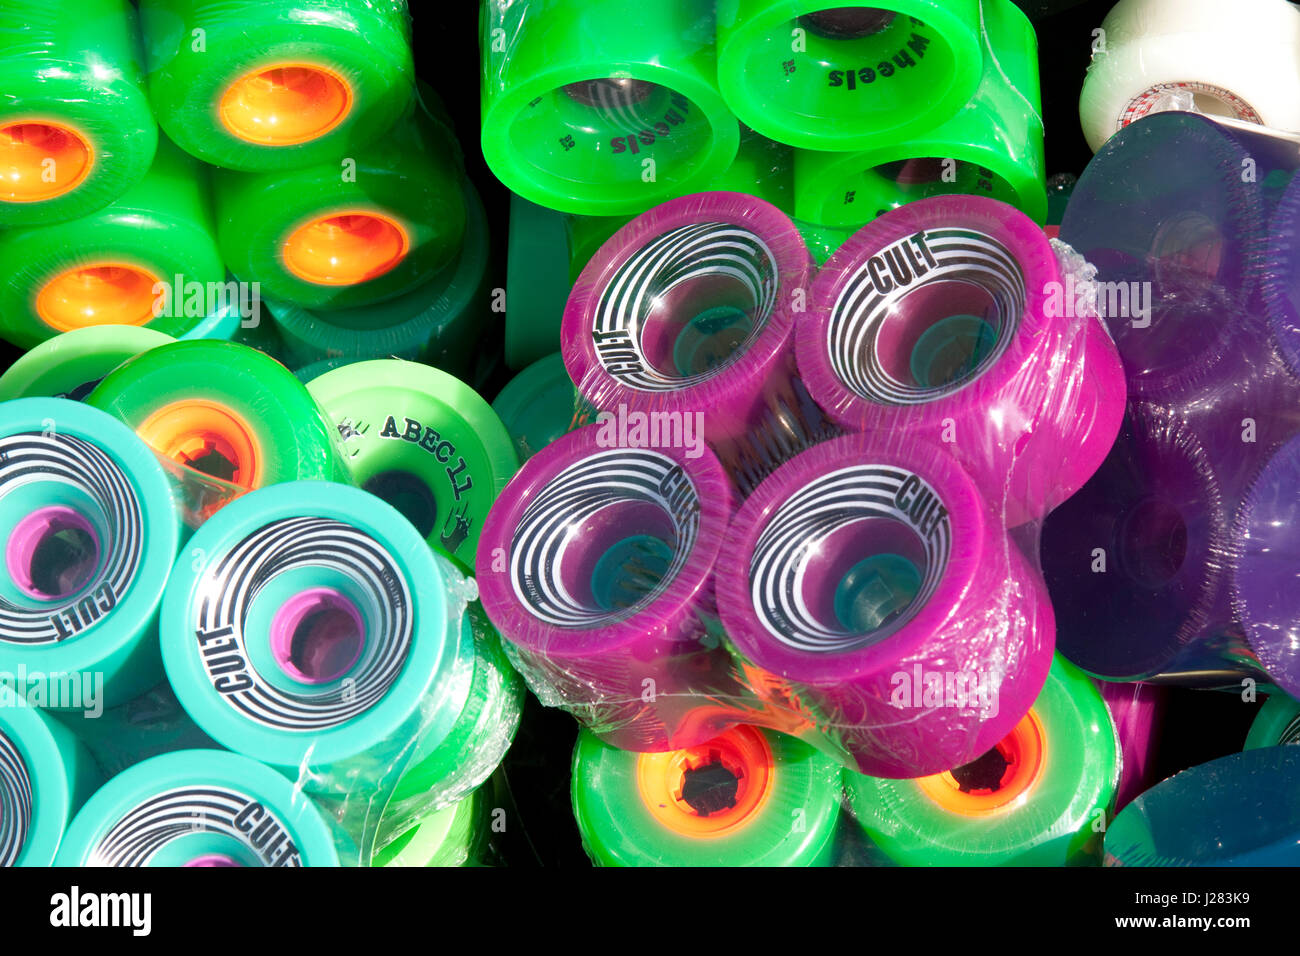 Brightly coloured/colored packs of skateboard wheels - Stock Image